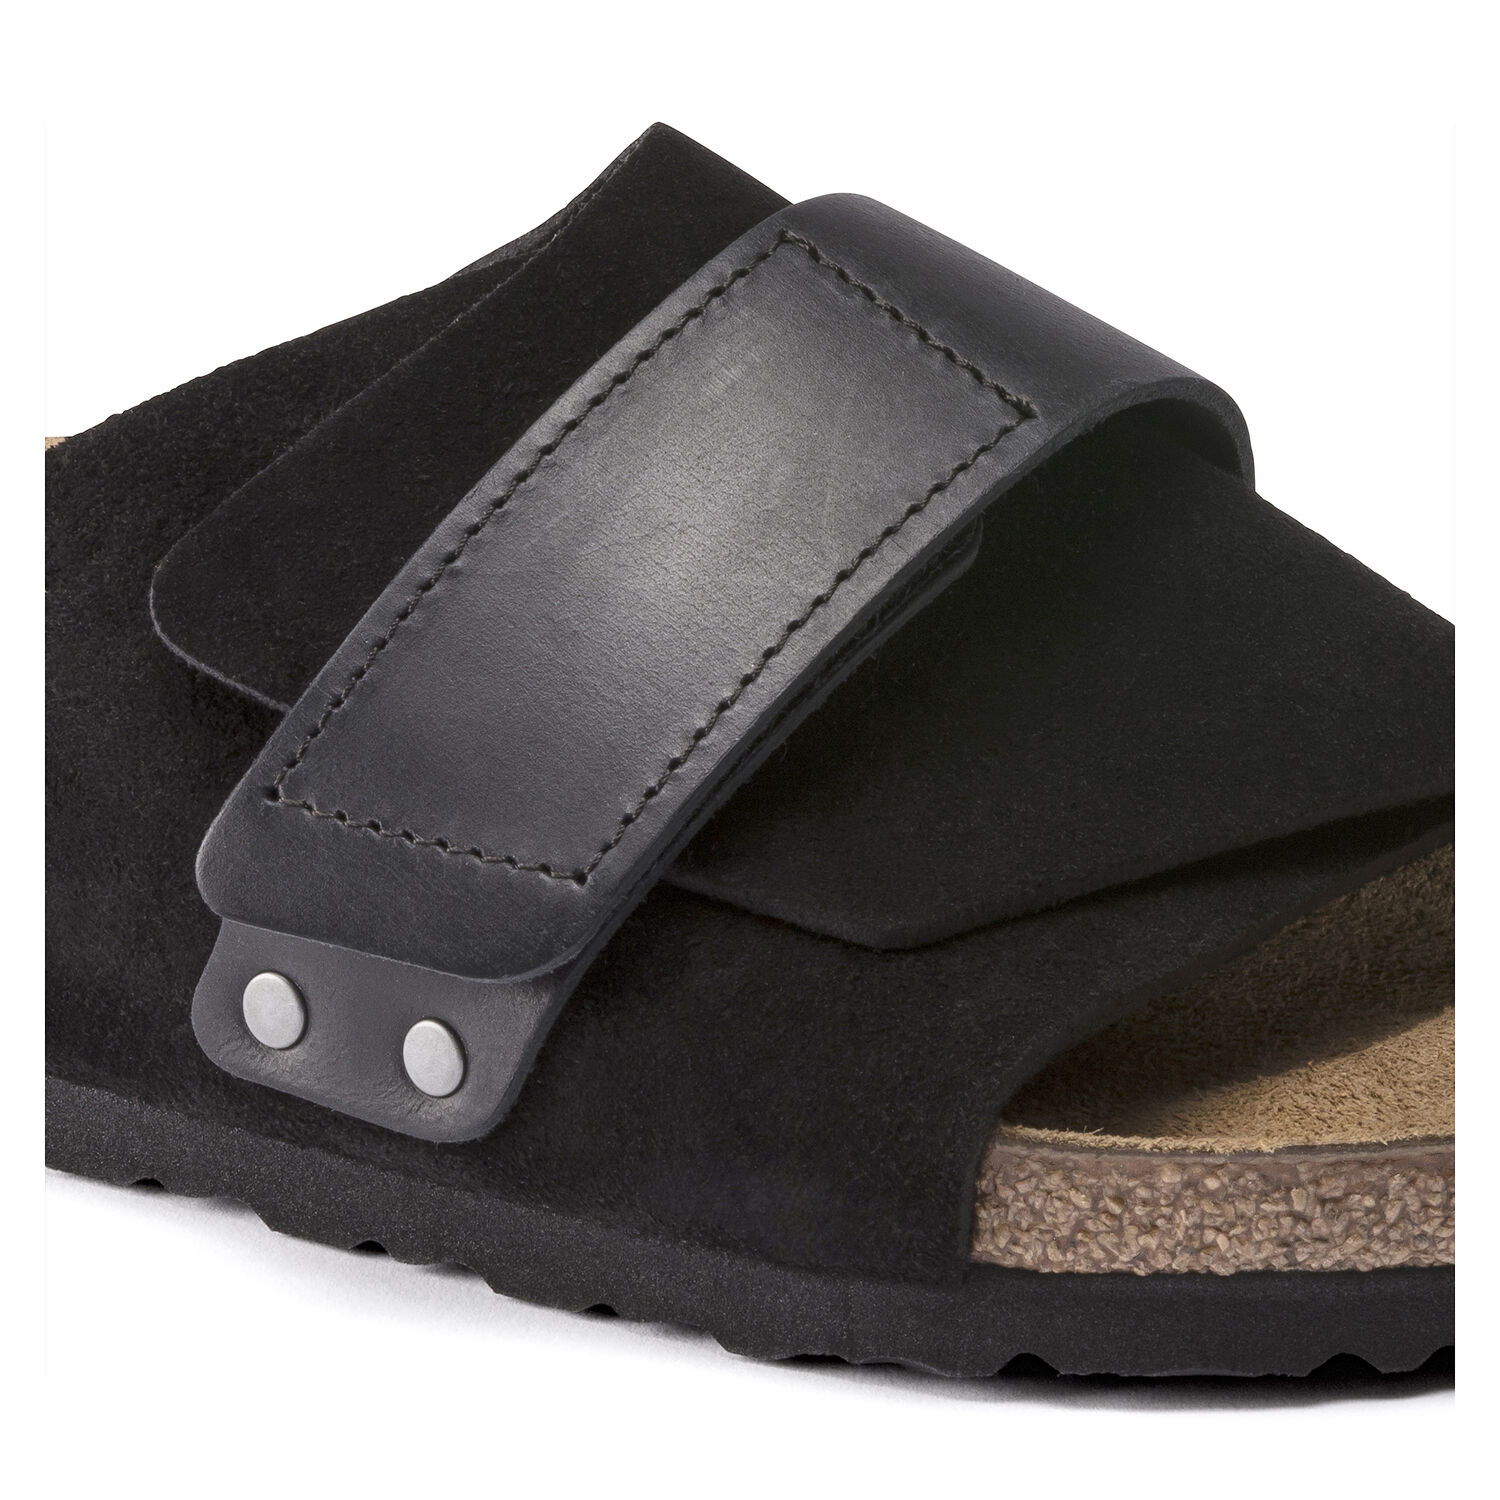 Kyoto Oiled Leather/Suede Leather